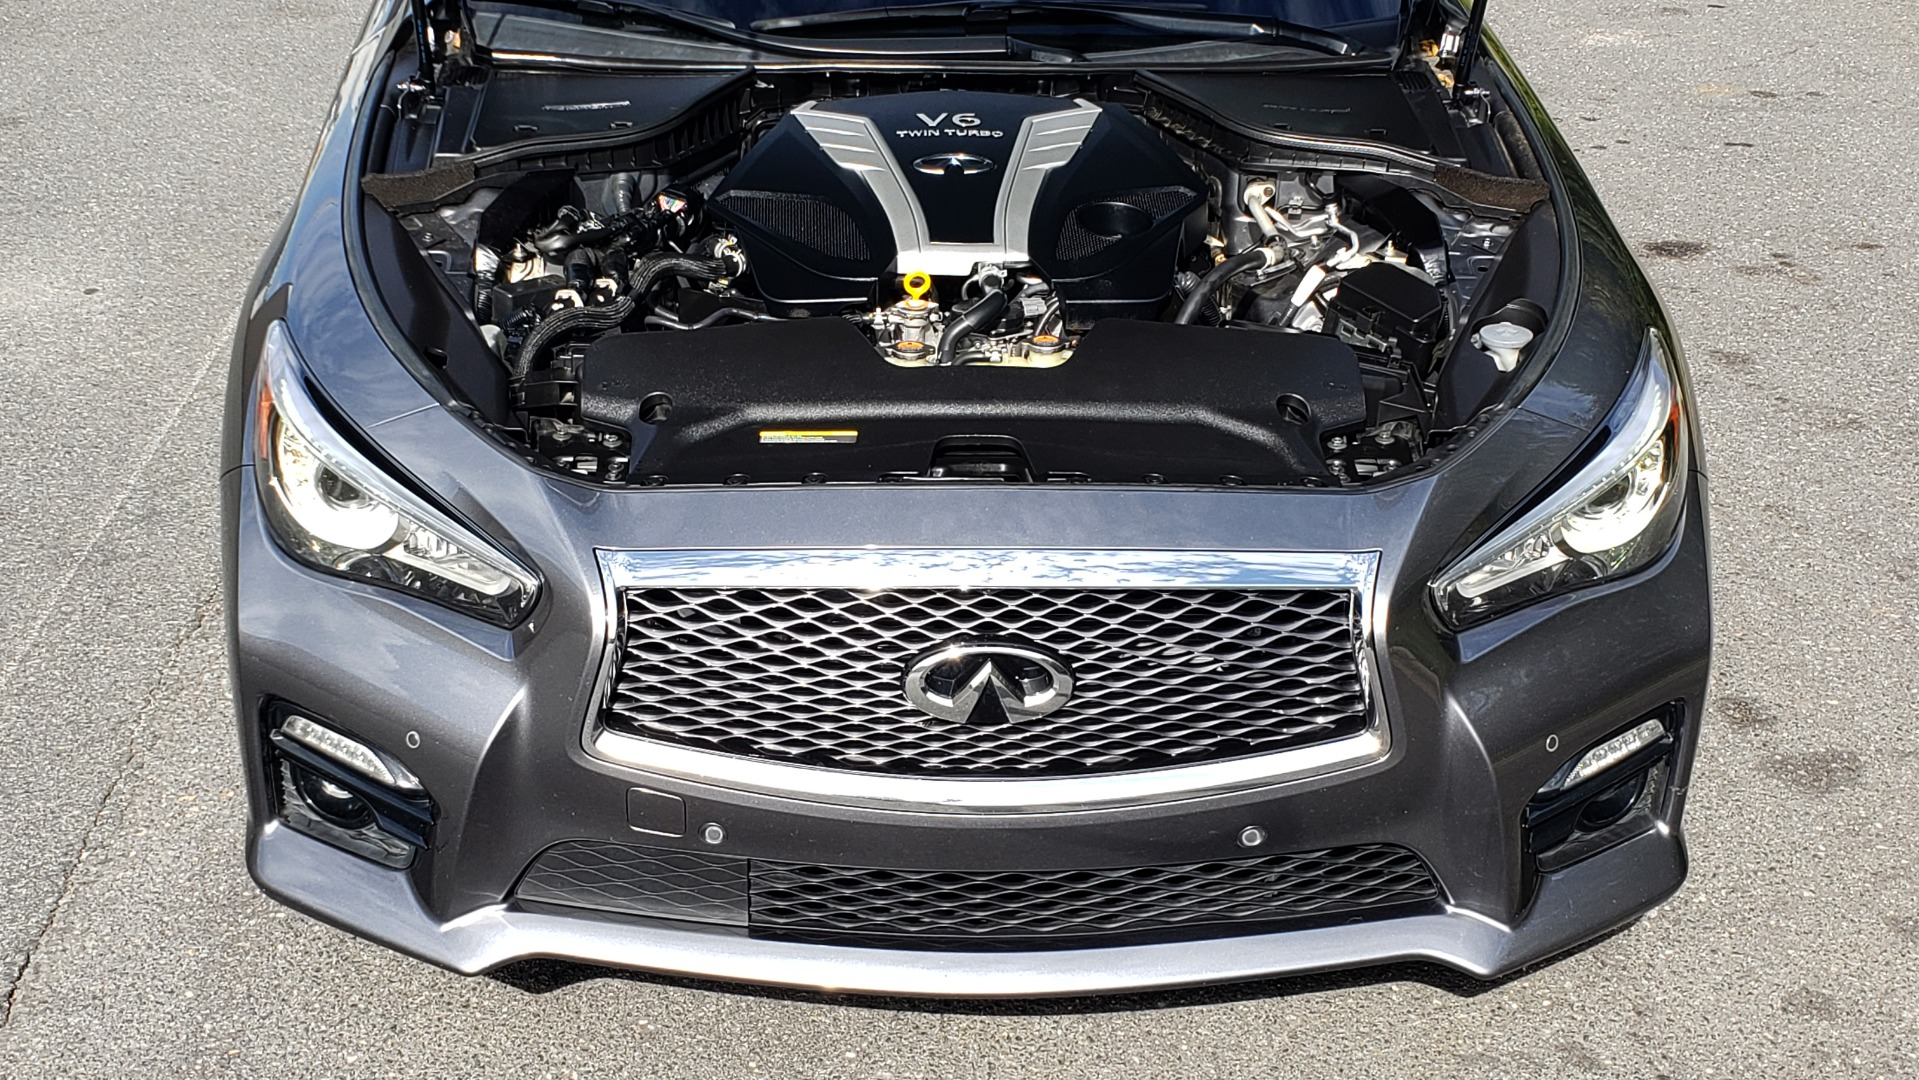 Used 2016 INFINITI Q50 3.0T RED SPORT 400 / NAV / PREM PLUS / BLIND SPOT / REARVIEW for sale $28,495 at Formula Imports in Charlotte NC 28227 11